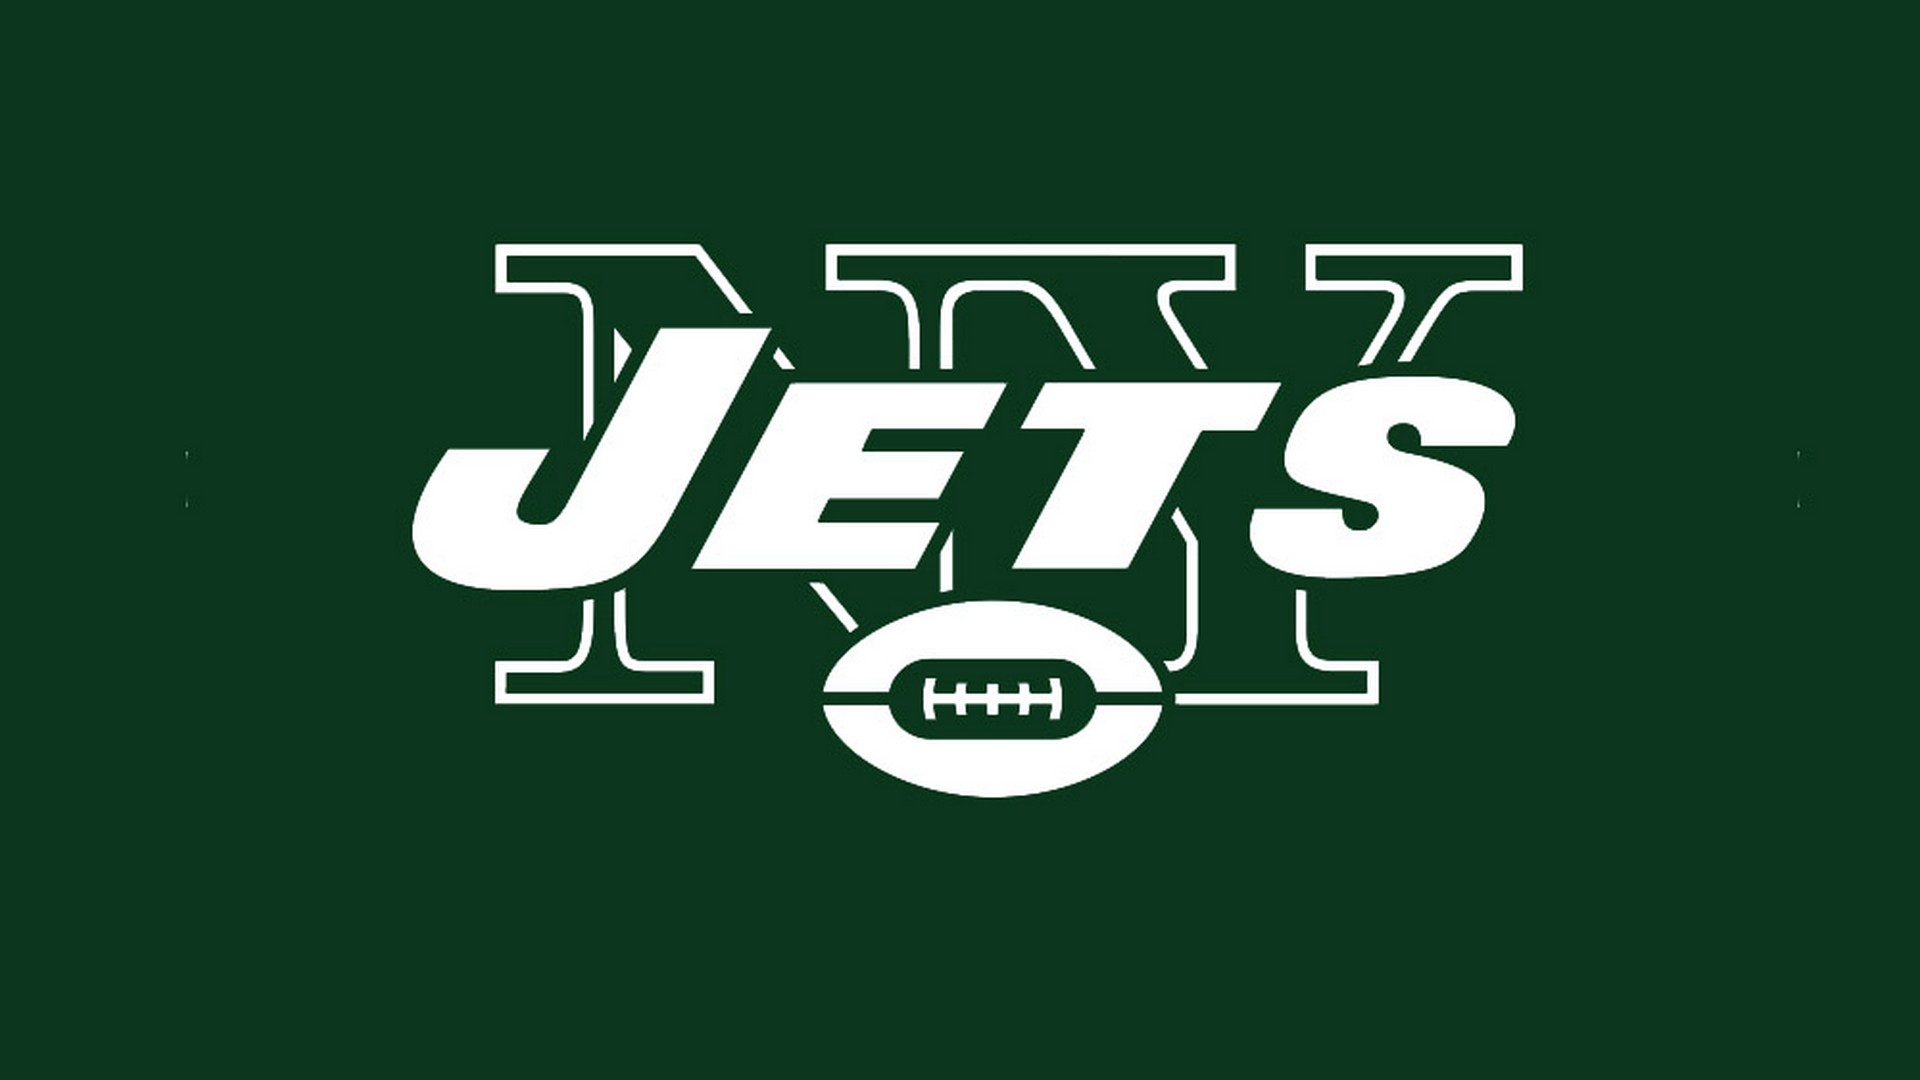 Hd Desktop Wallpaper New York Jets With Resolution - Logos And Uniforms Of The New York Jets - HD Wallpaper